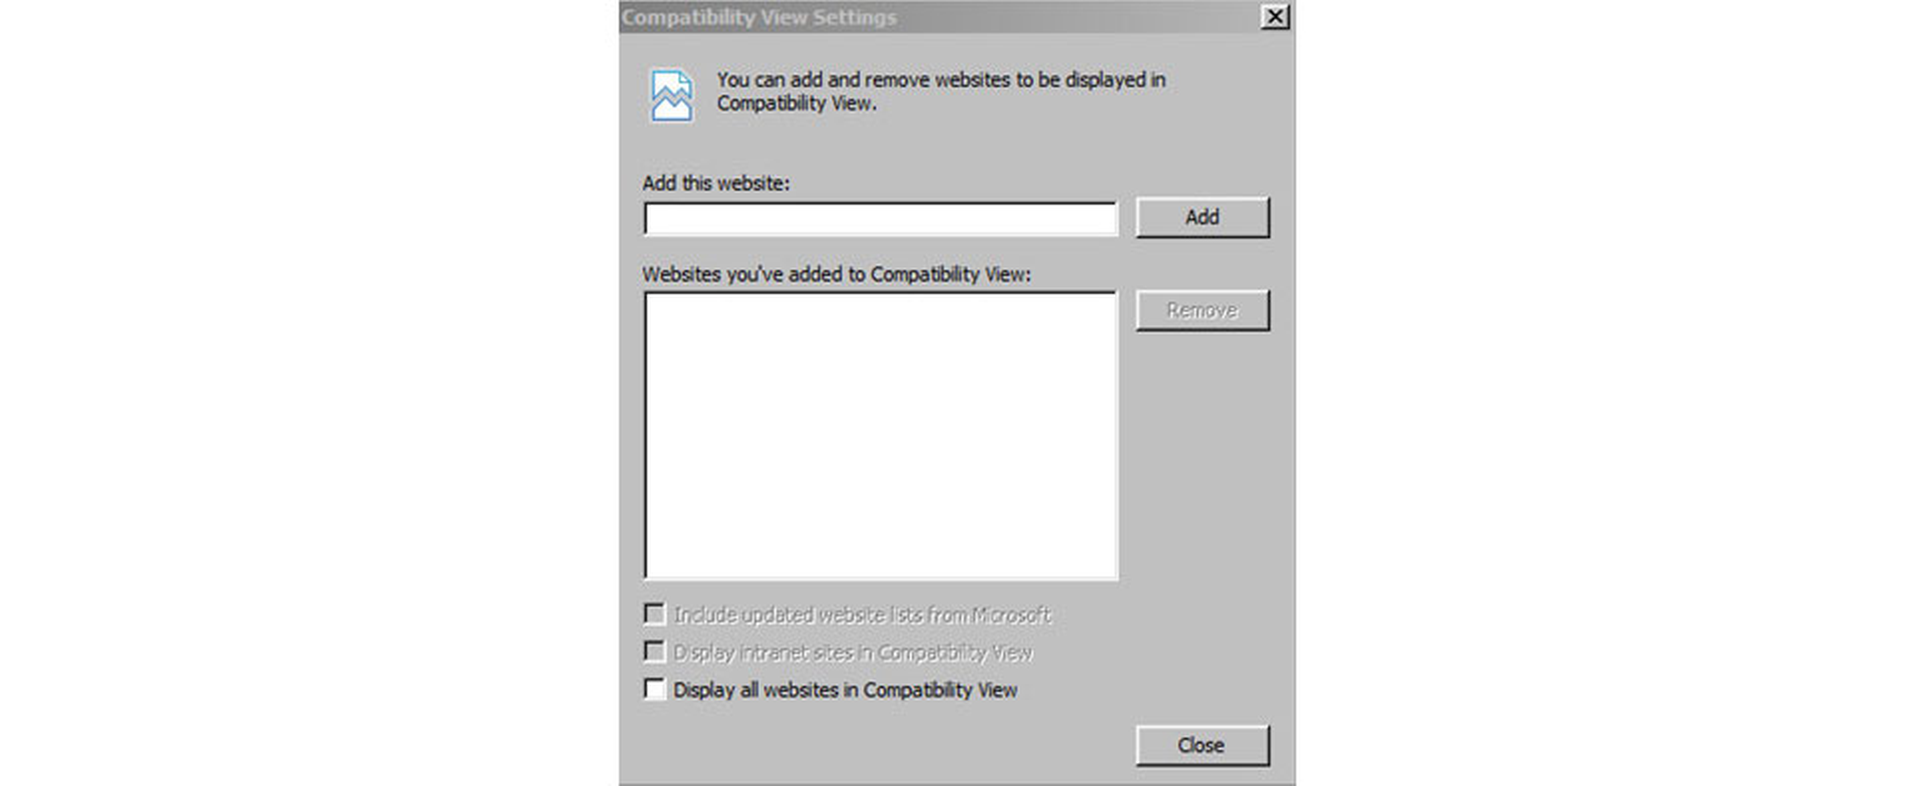 Compatibility View Setting in Internet Explorer